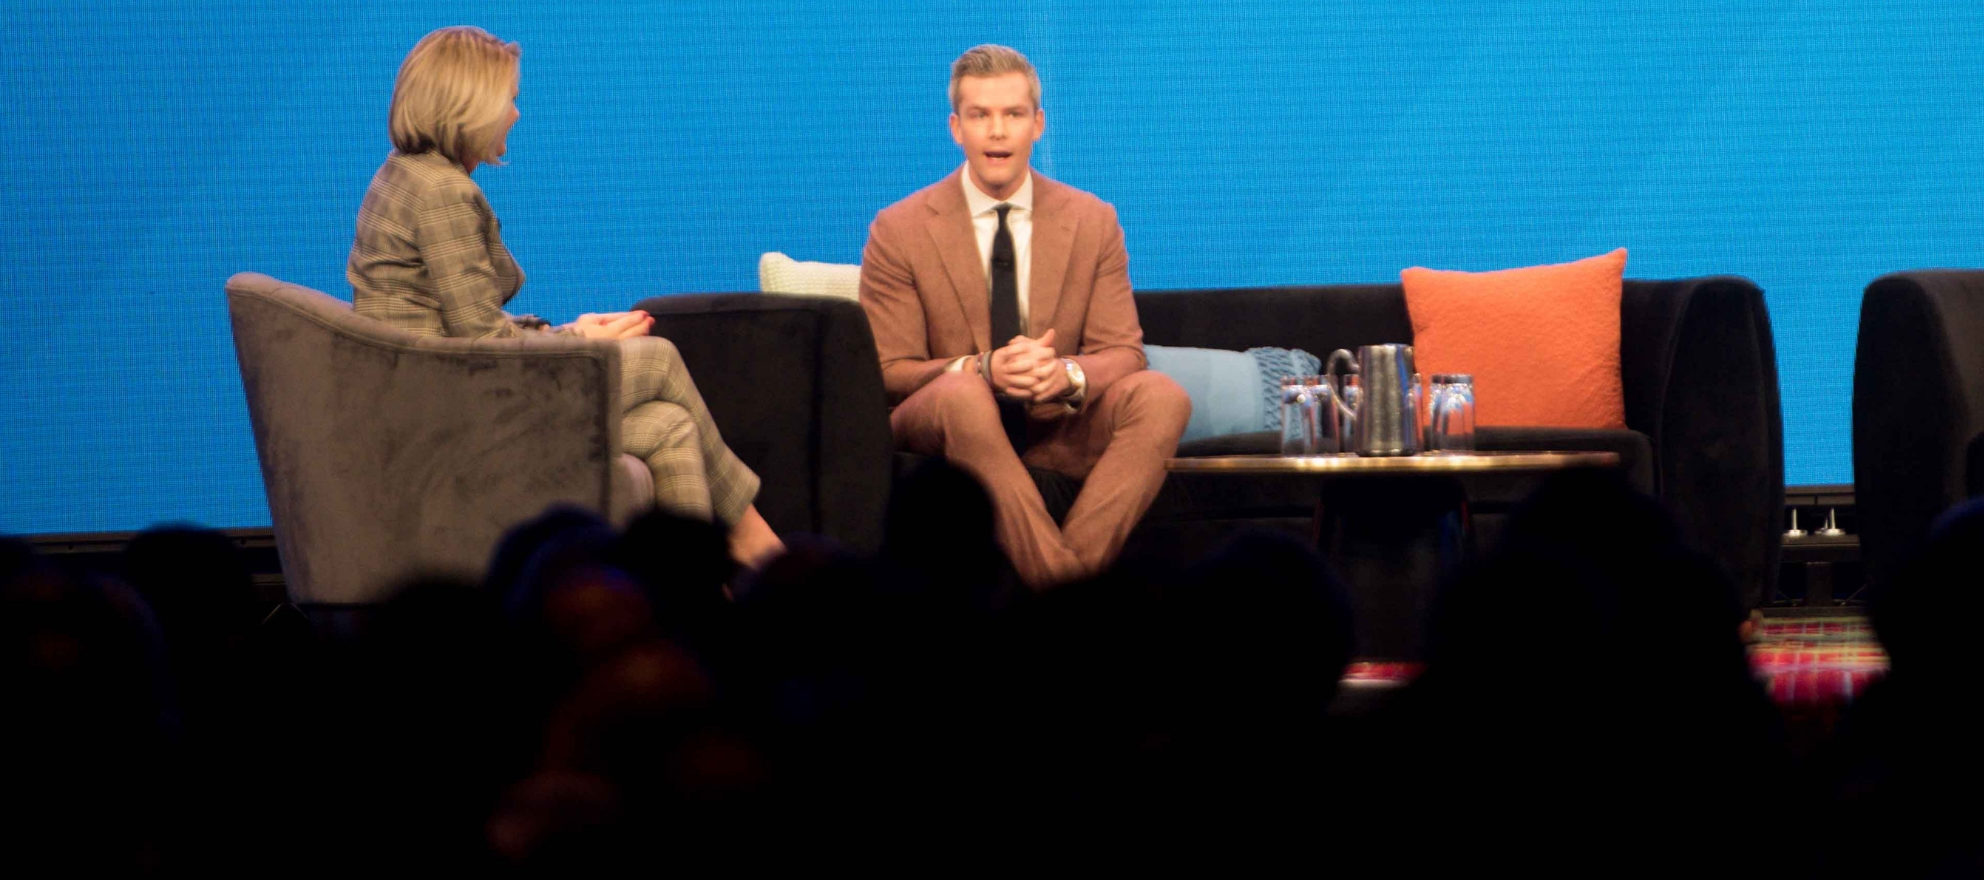 WATCH: What's the one thing that changed Ryan Serhant's life?